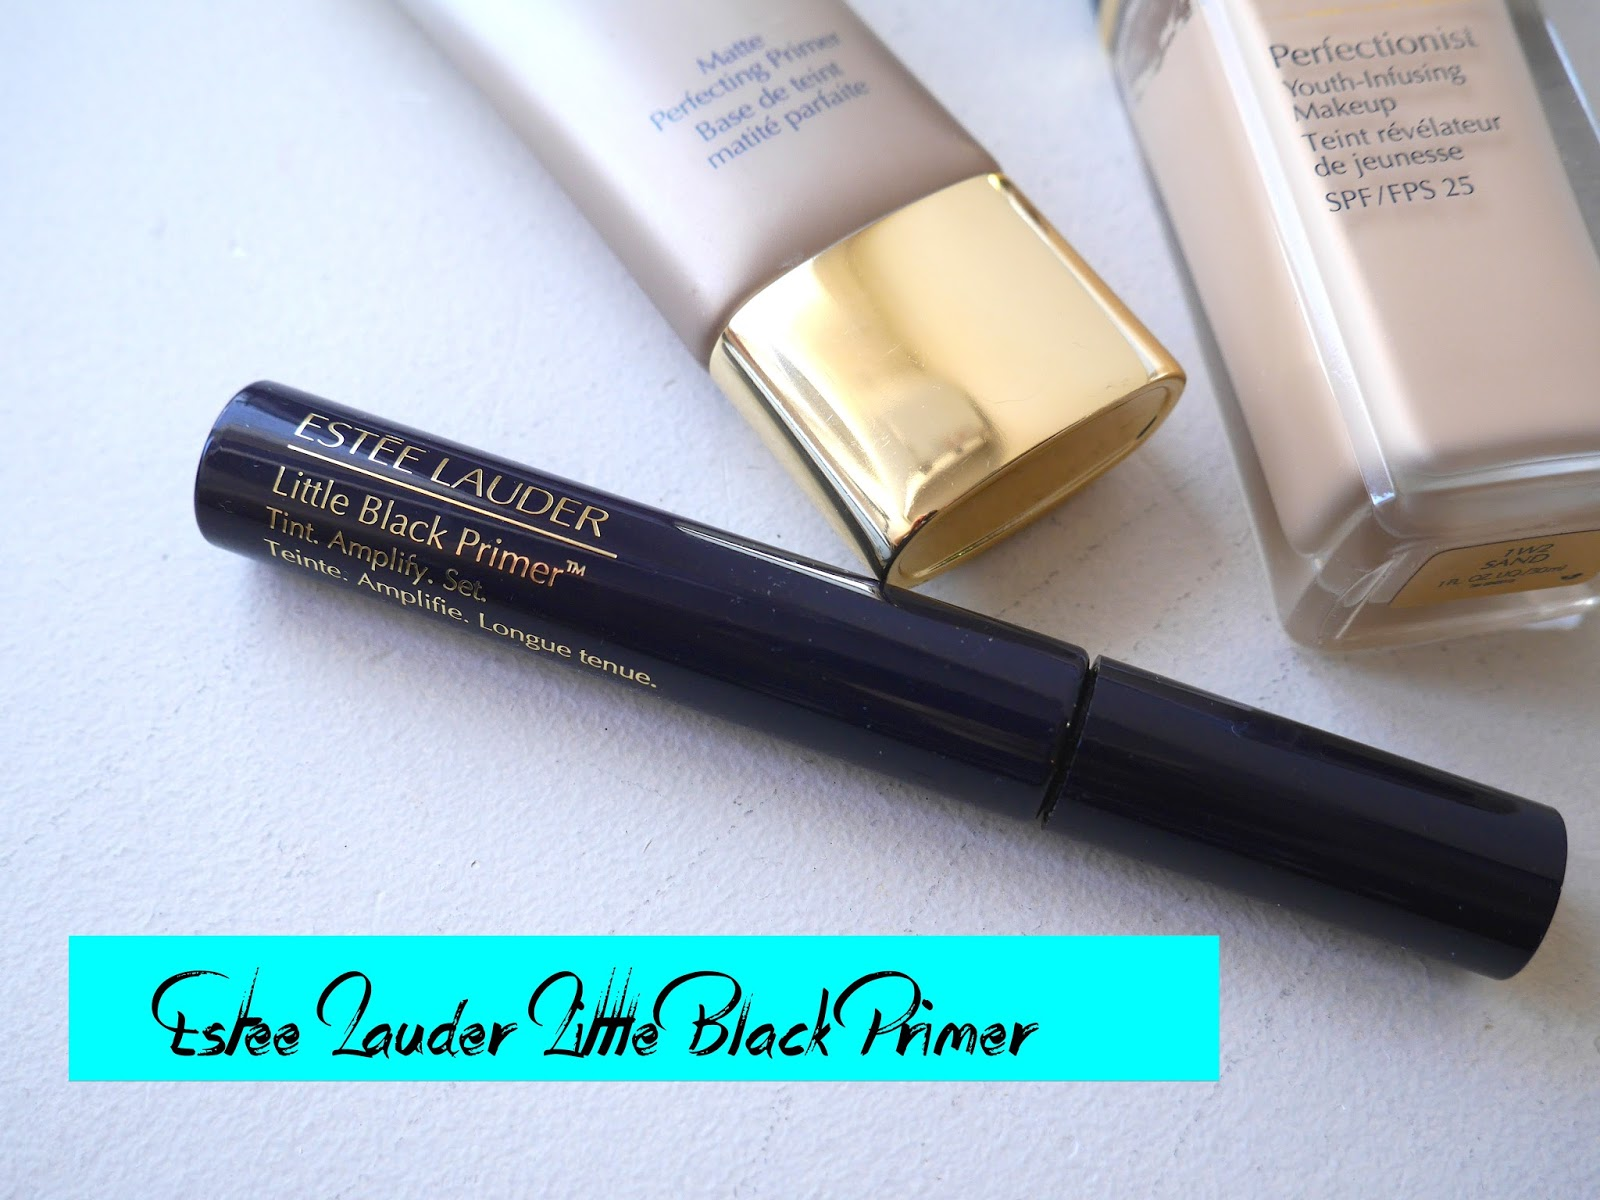 estee lauder little black primer mascara review